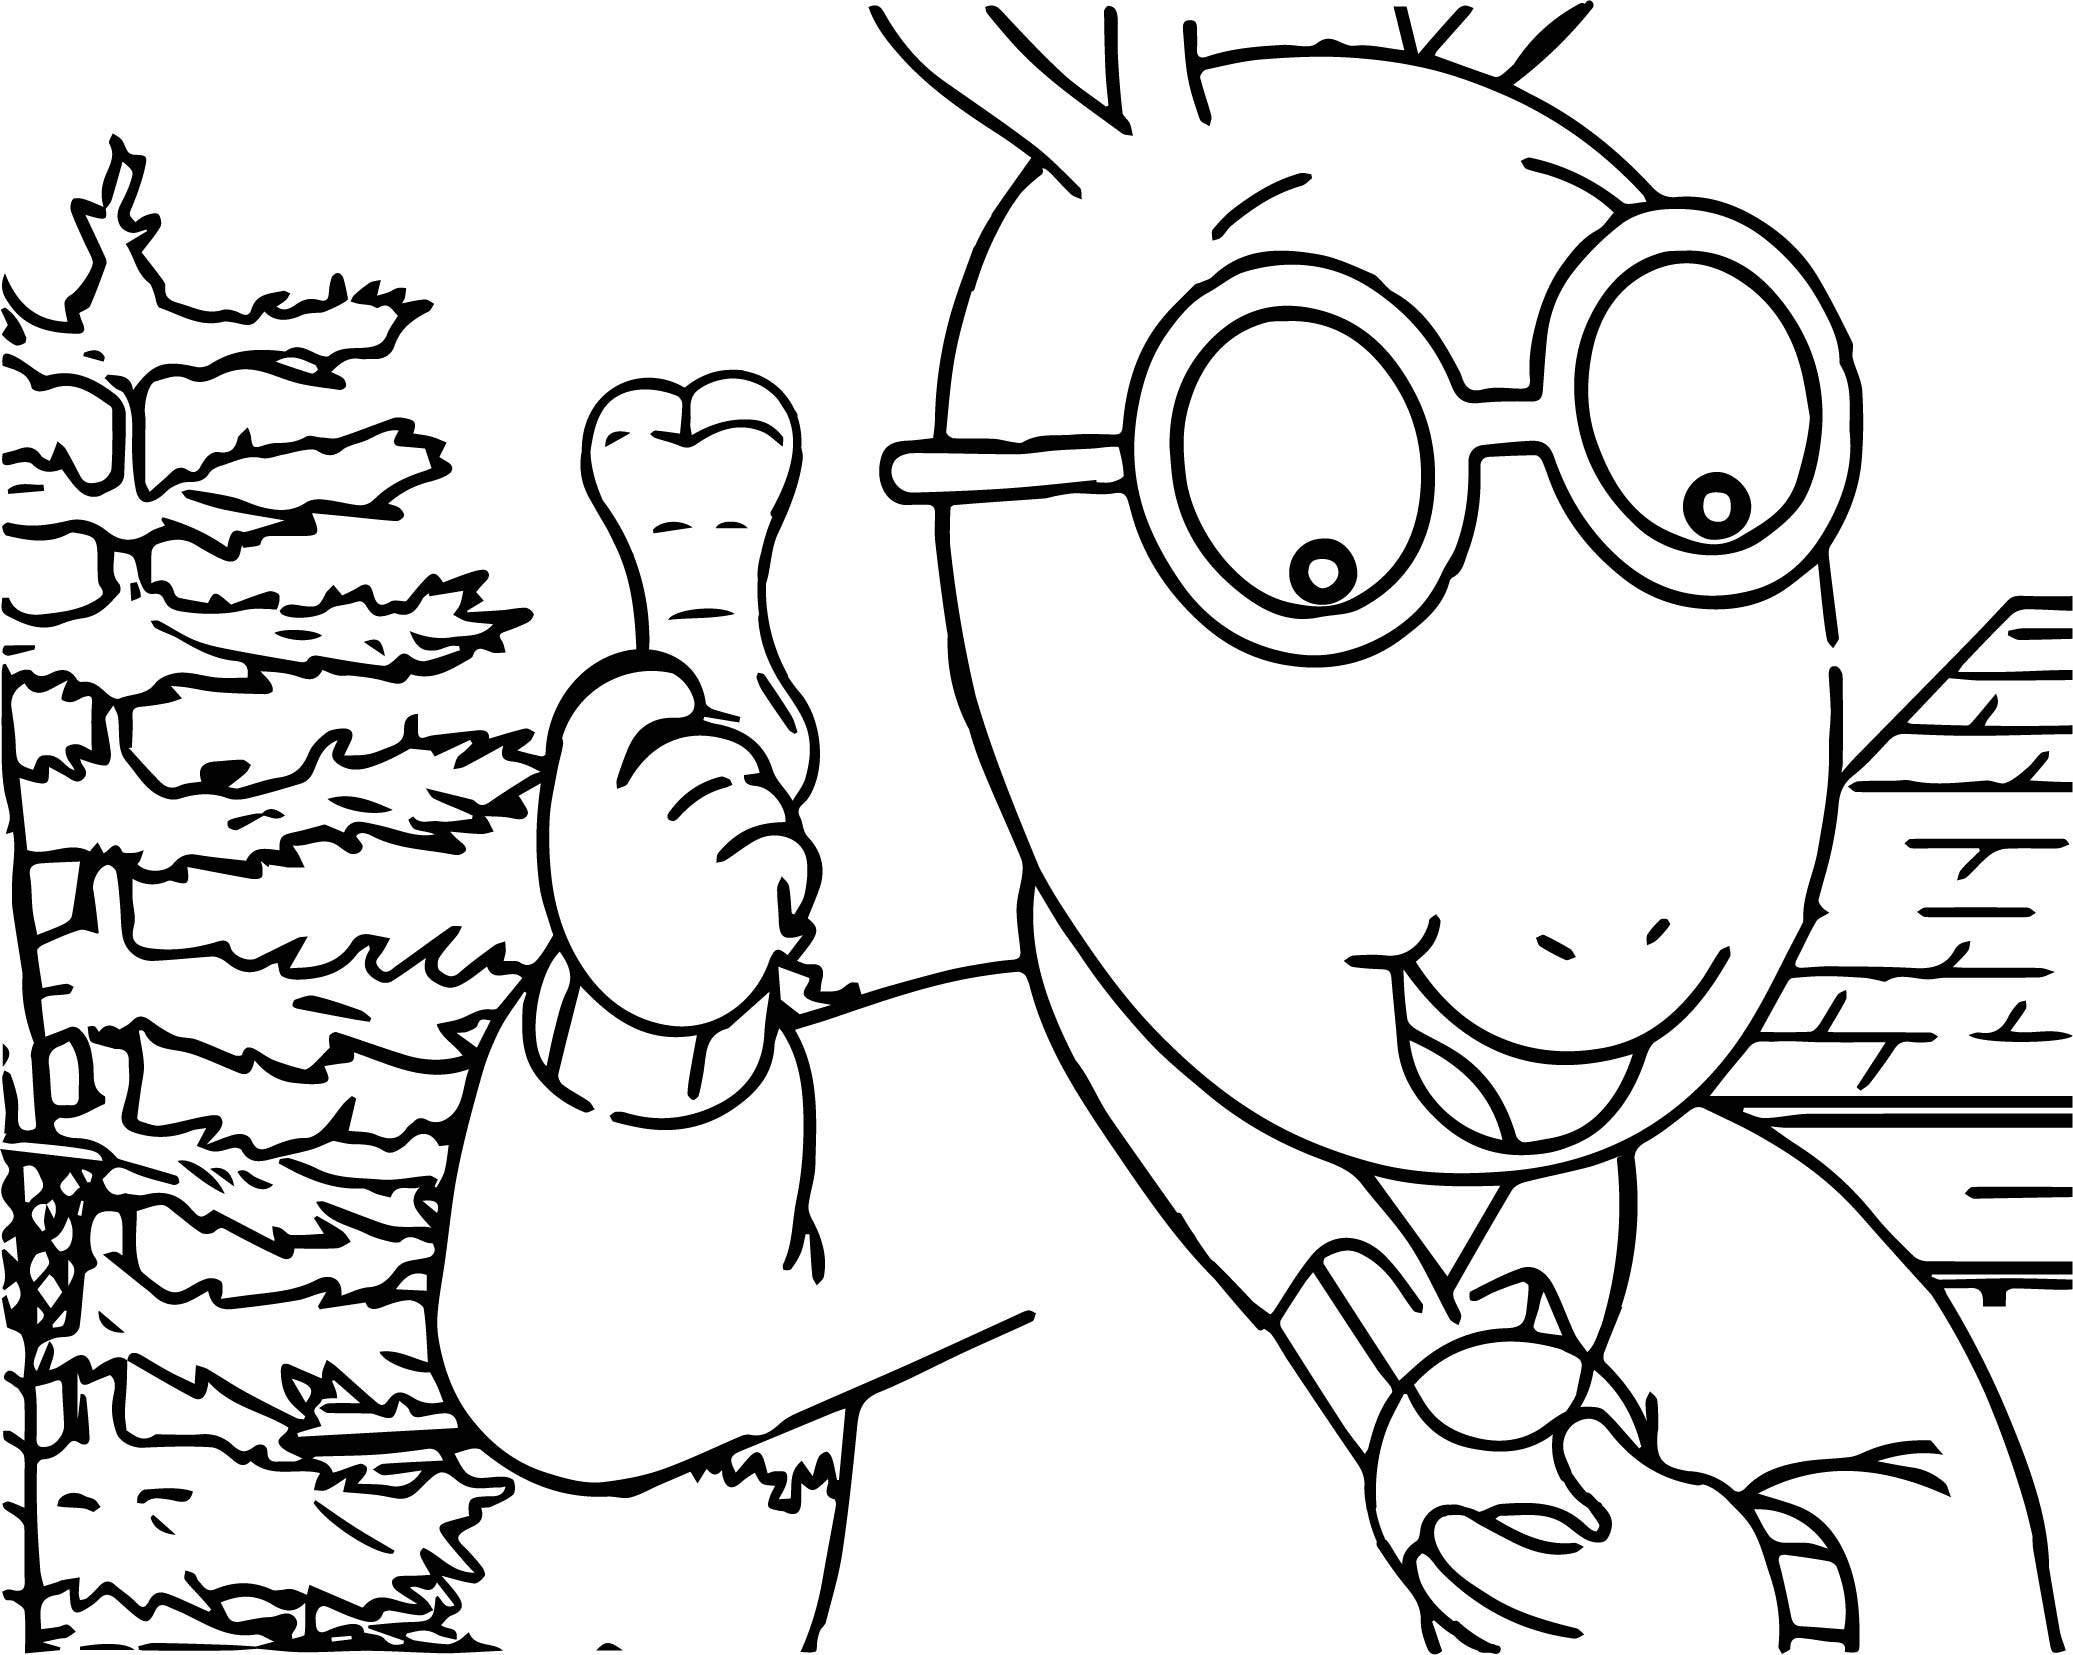 arthur coloring pages with pets - photo#11